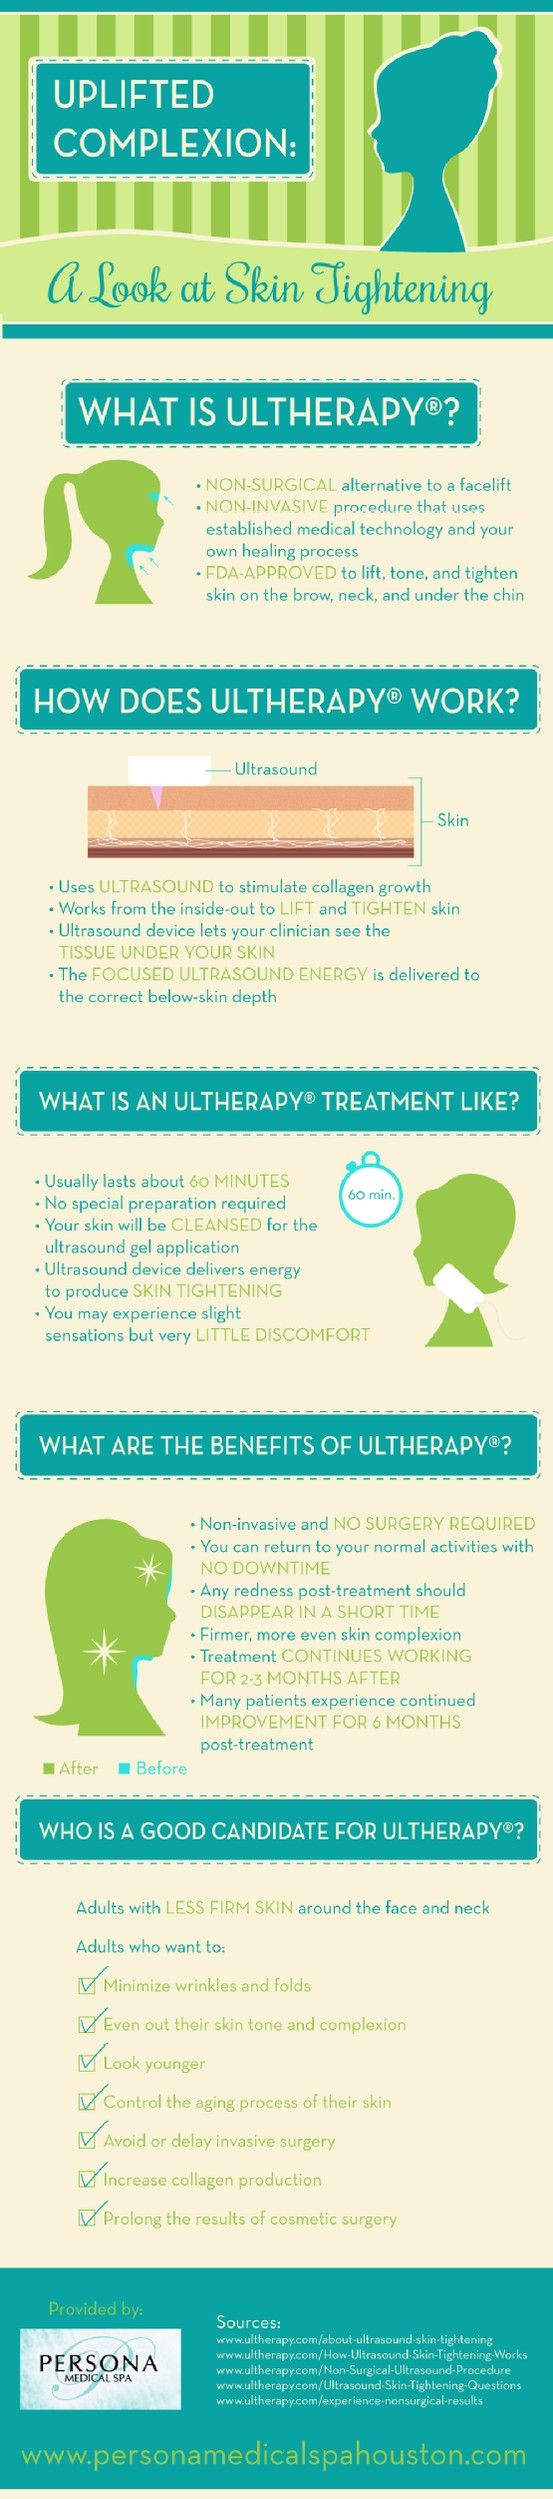 After an Ultherapy treatment, a patient can enjoy firm, more even skin. The treatment continues to work for 2-3 months, with some patients enjoying continued improvement for up to 6 months. Learn more at http://www.chronosbhw.com/ultherapy/ #ultherapy #lookyoung #skincare